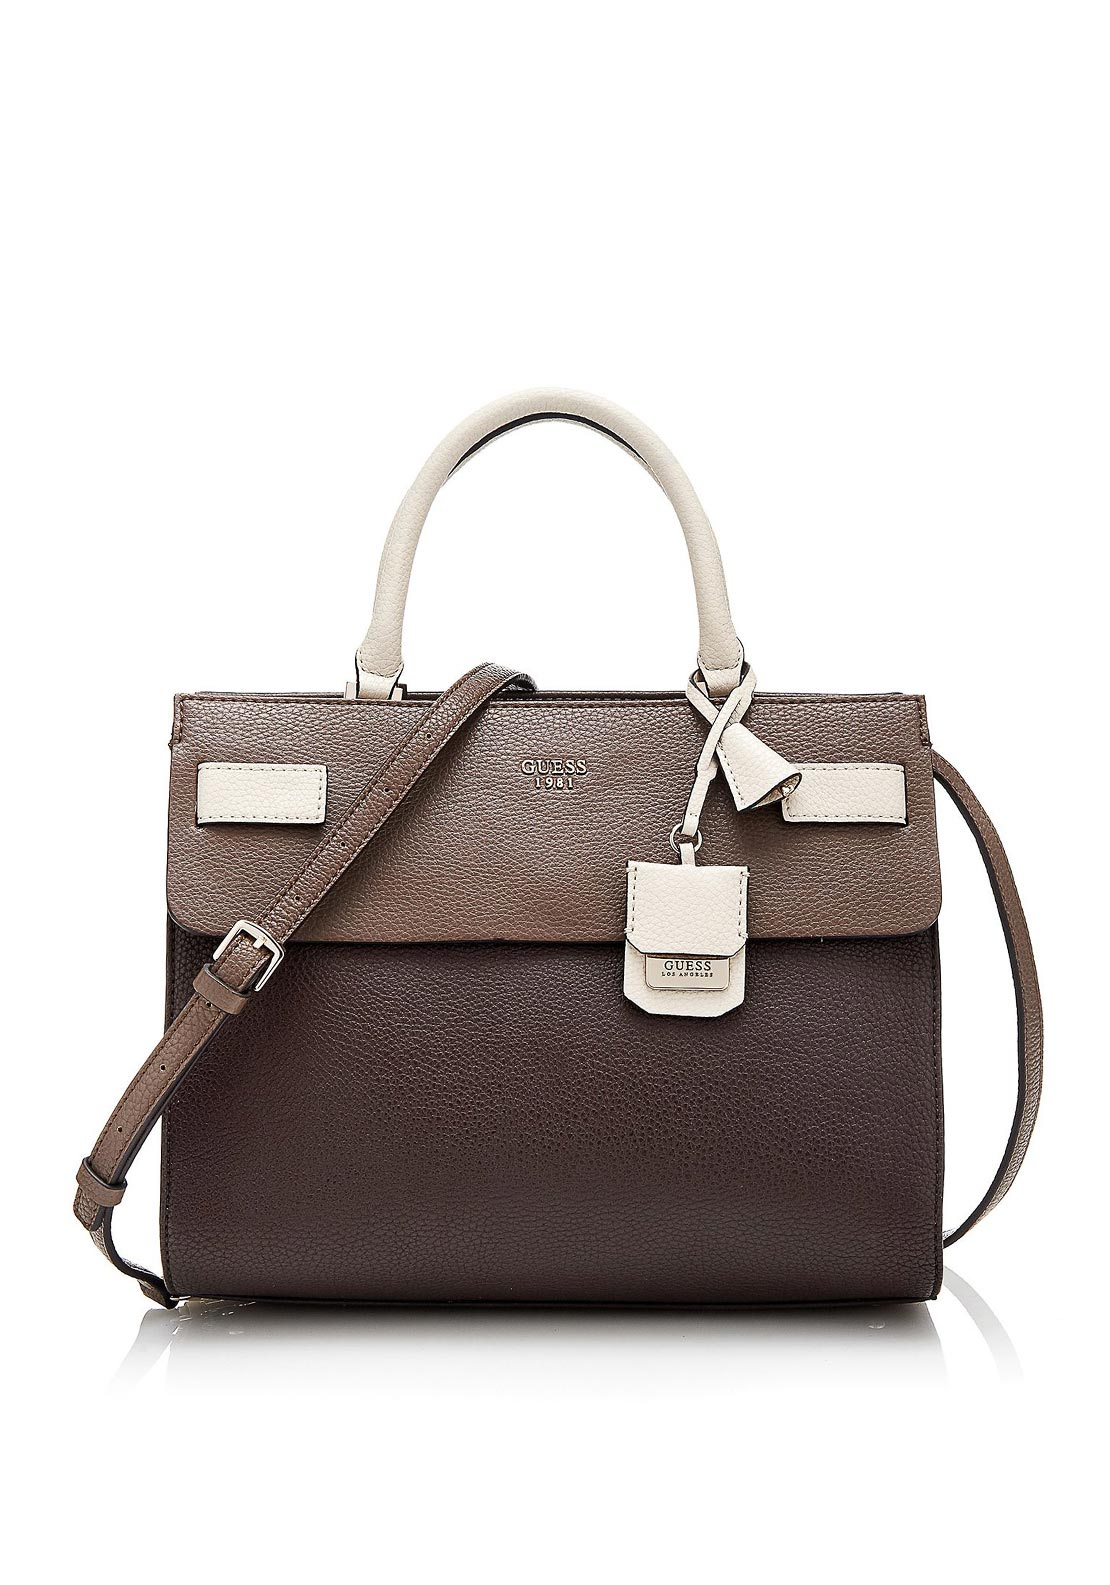 Guess Cate Rigid Grab Bag, Brown